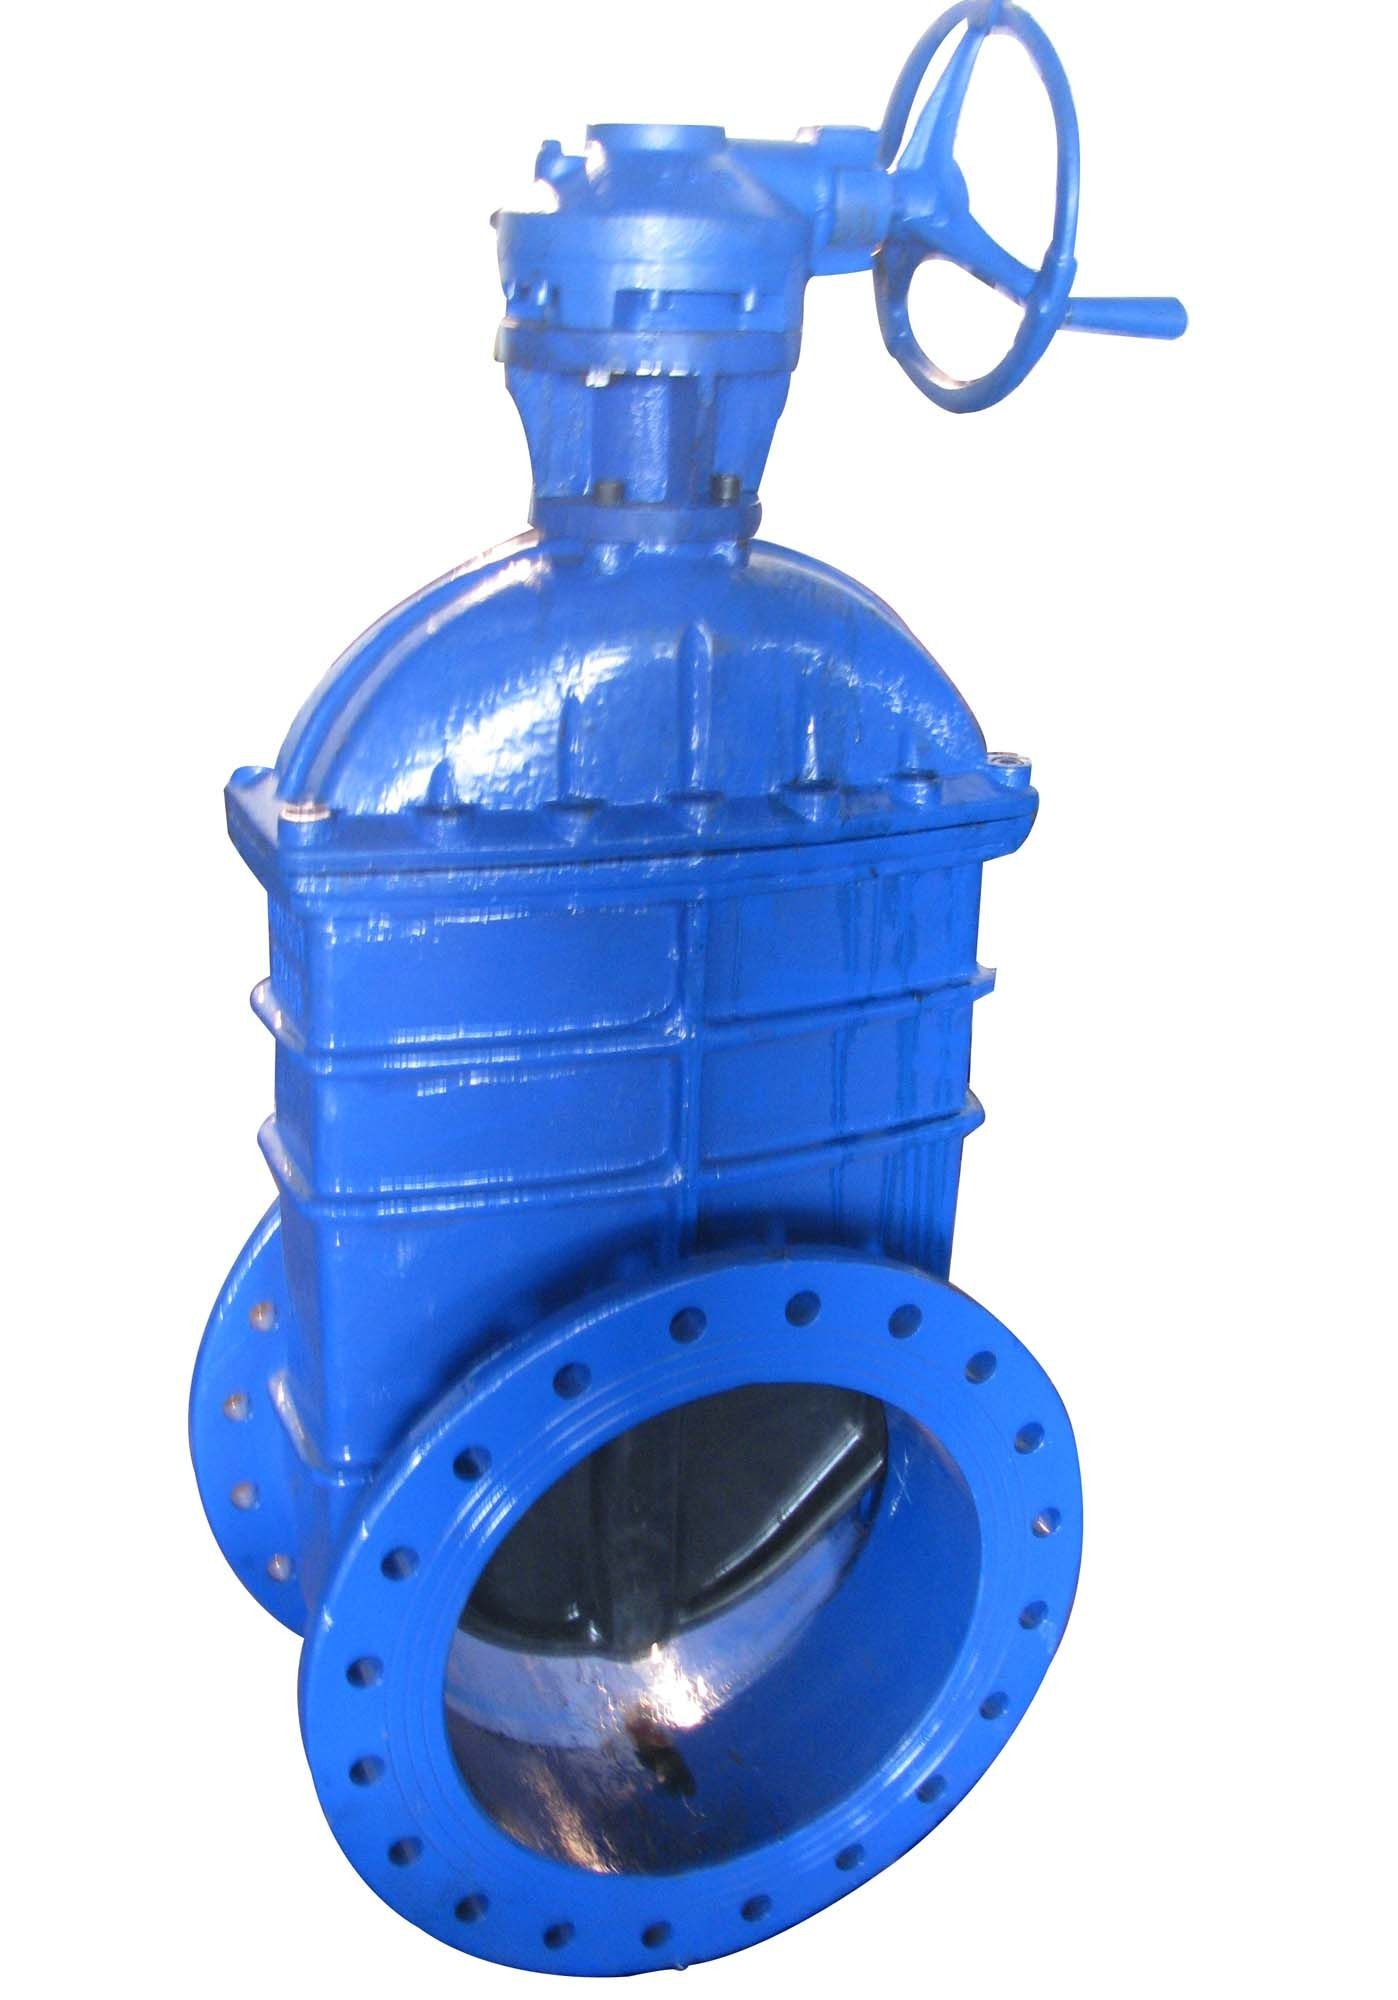 Flanged Resilient Seated Gate Valve 32'' Horizontal With